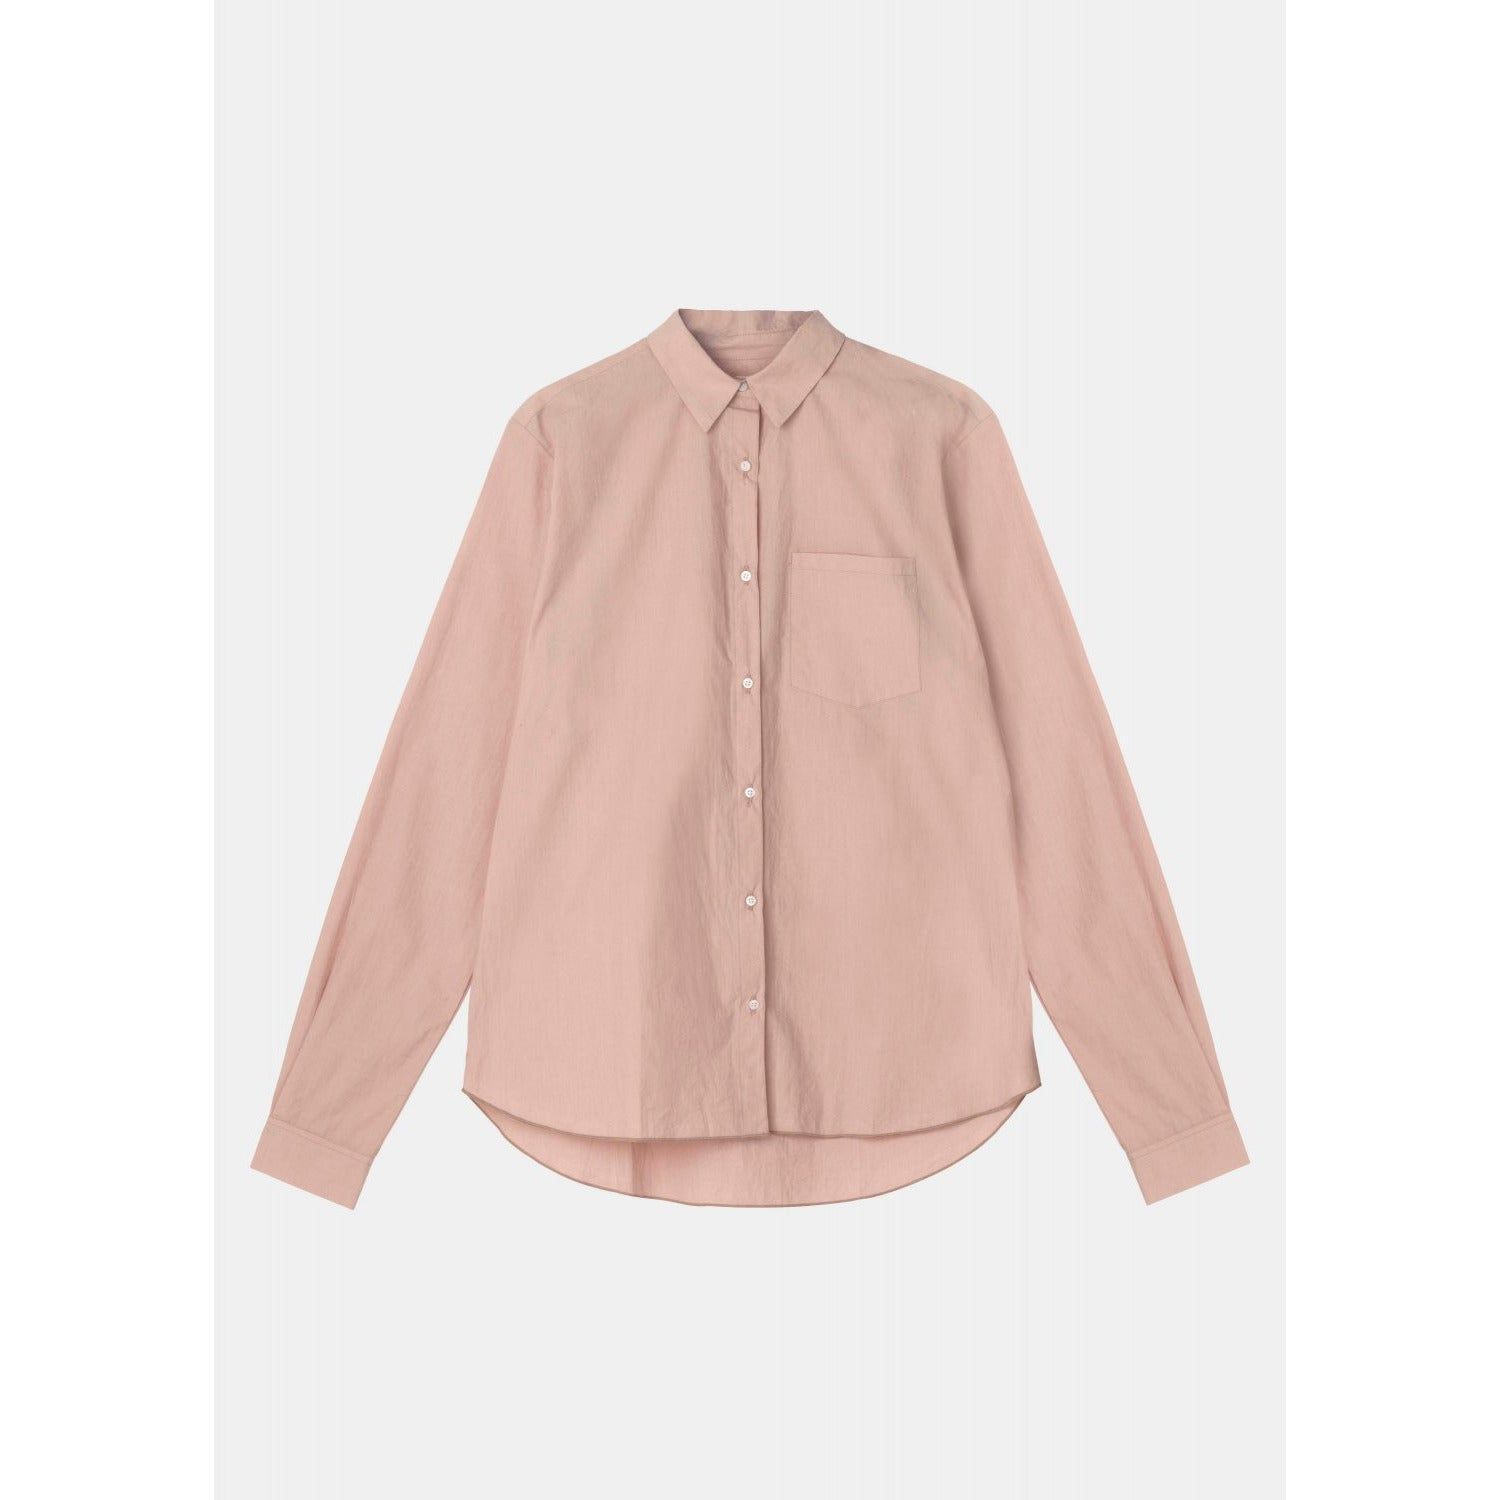 pink colored organic cotton long sleeve button down by designer aiayu